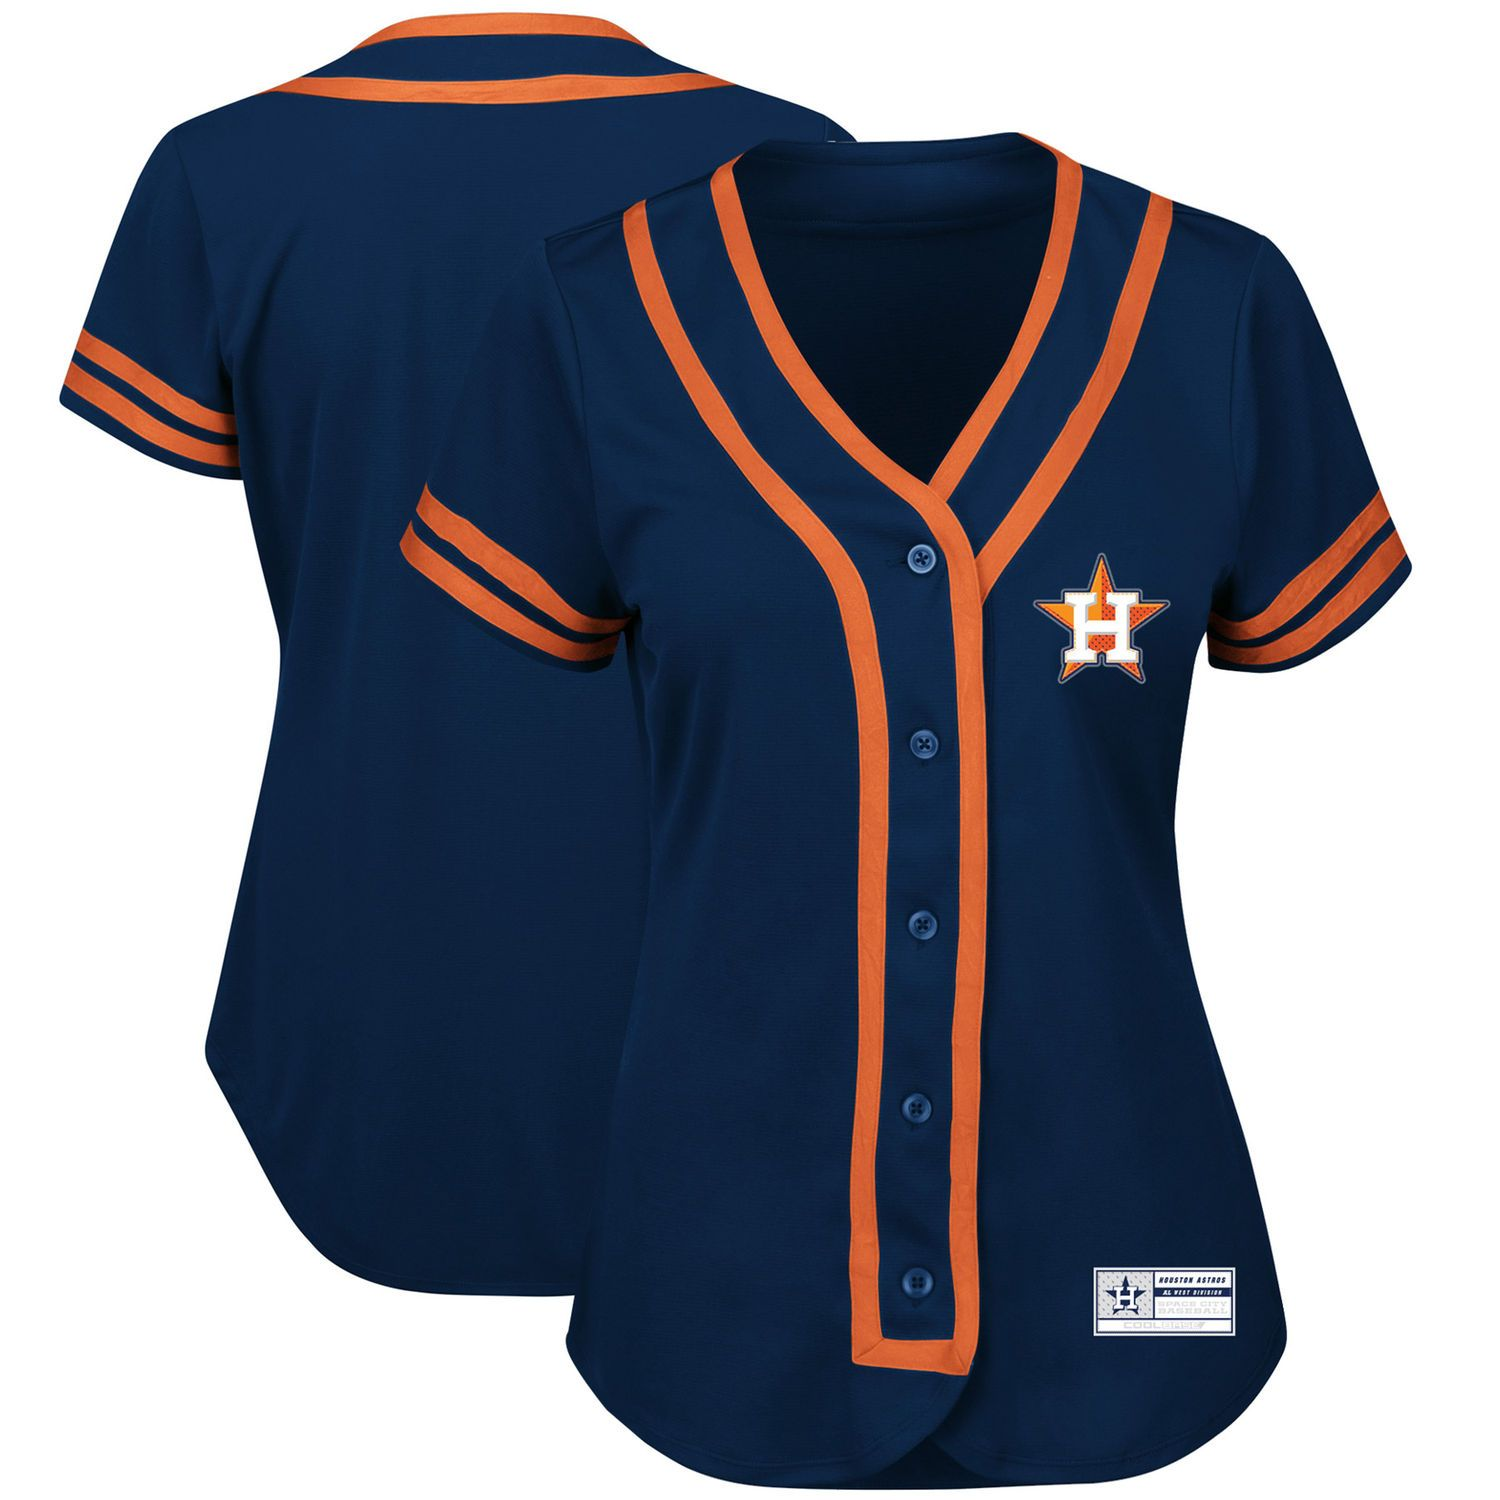 6cdad07c8 Houston Astros Majestic Women s Absolute Victory Fashion Team Jersey - Navy  Orange